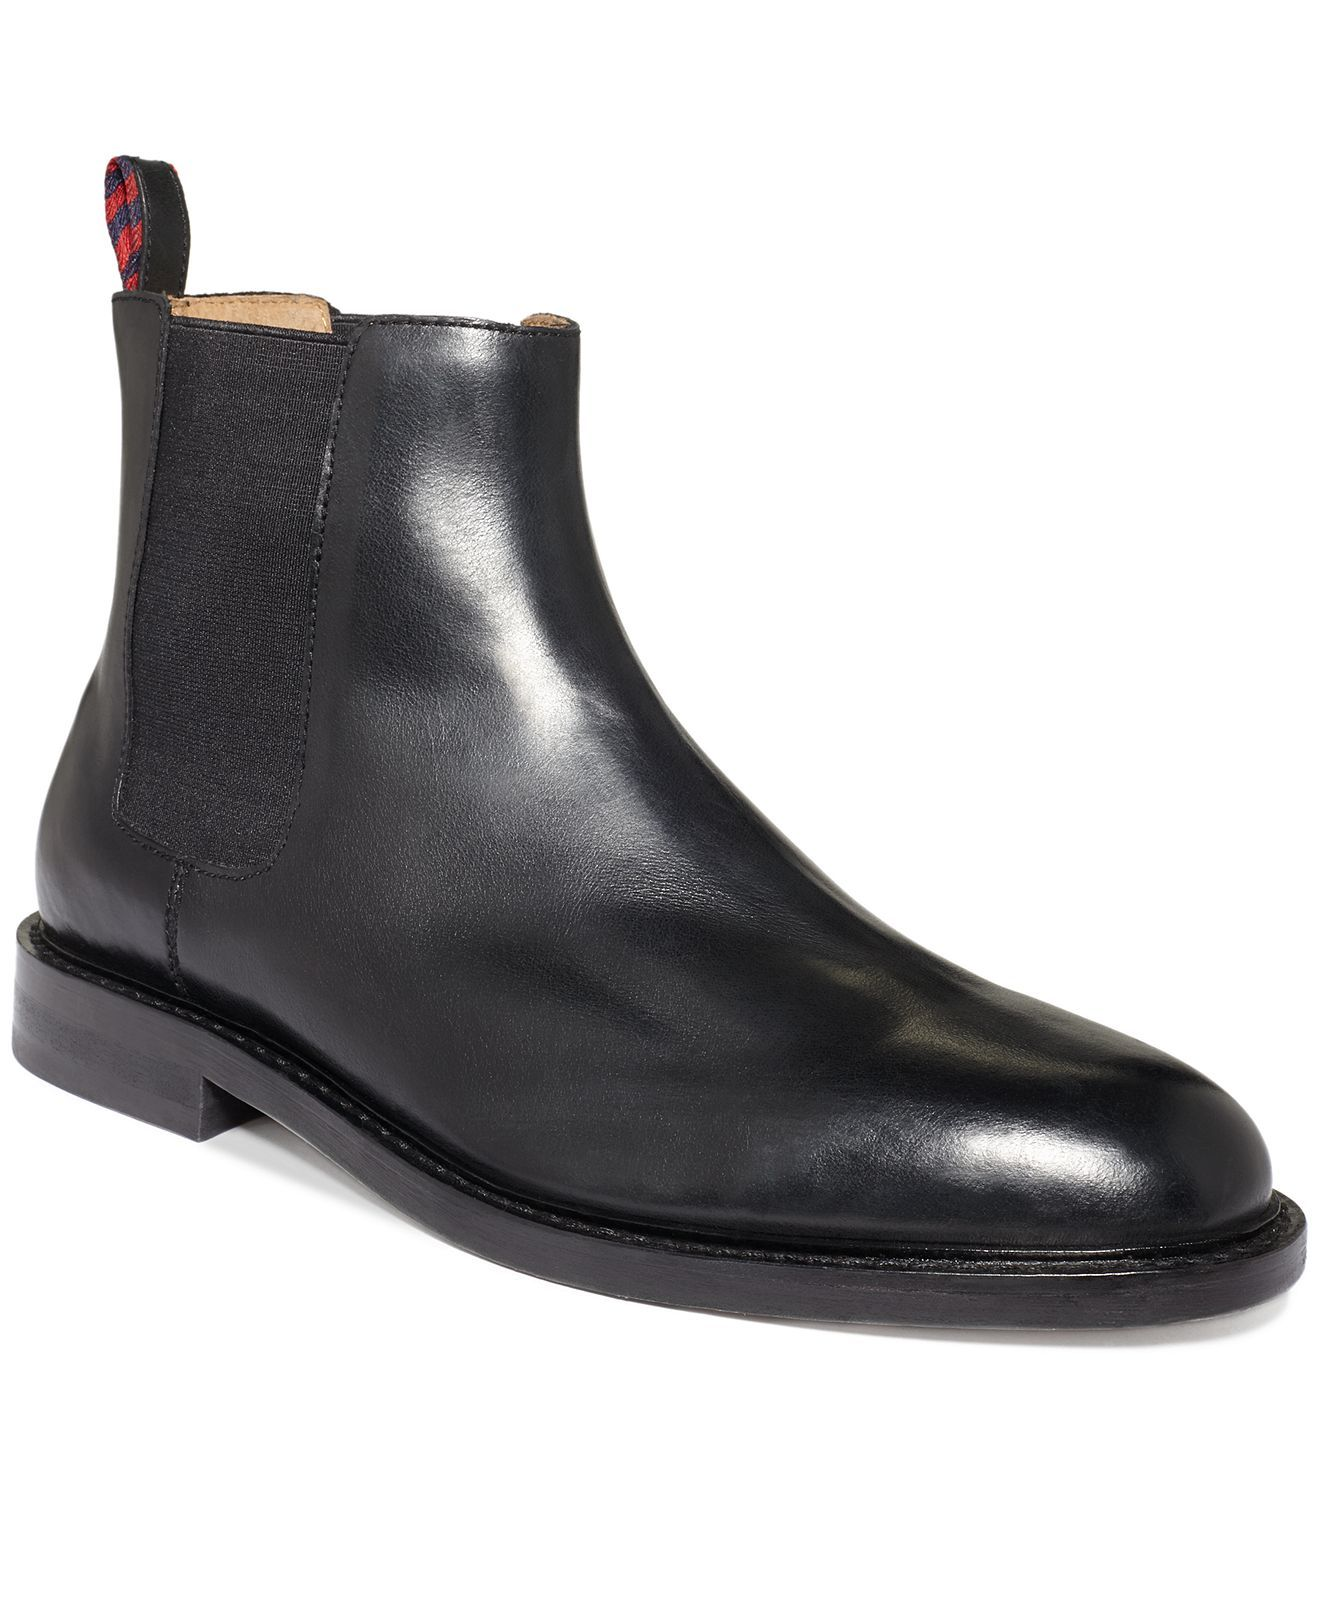 Polo Ralph Lauren Shoes, Newent Chelsea Boots - Shoes - Men ...